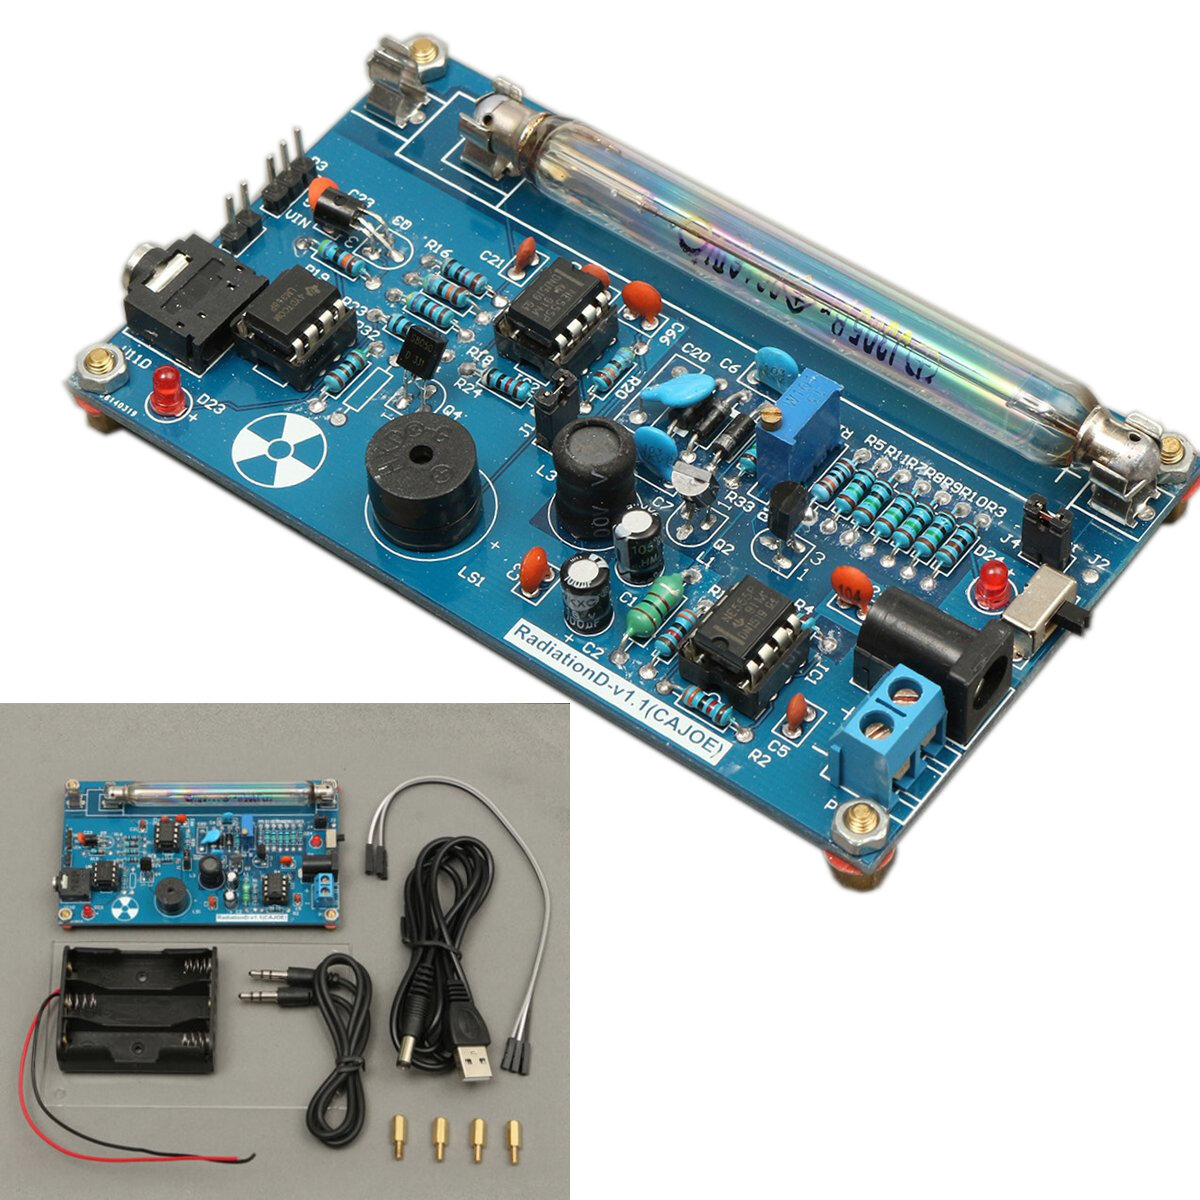 Assembled Diy Geiger Counter Kit Module Miller Tube Gm Nuclear With Usb Interface Schematics Radiation Detector